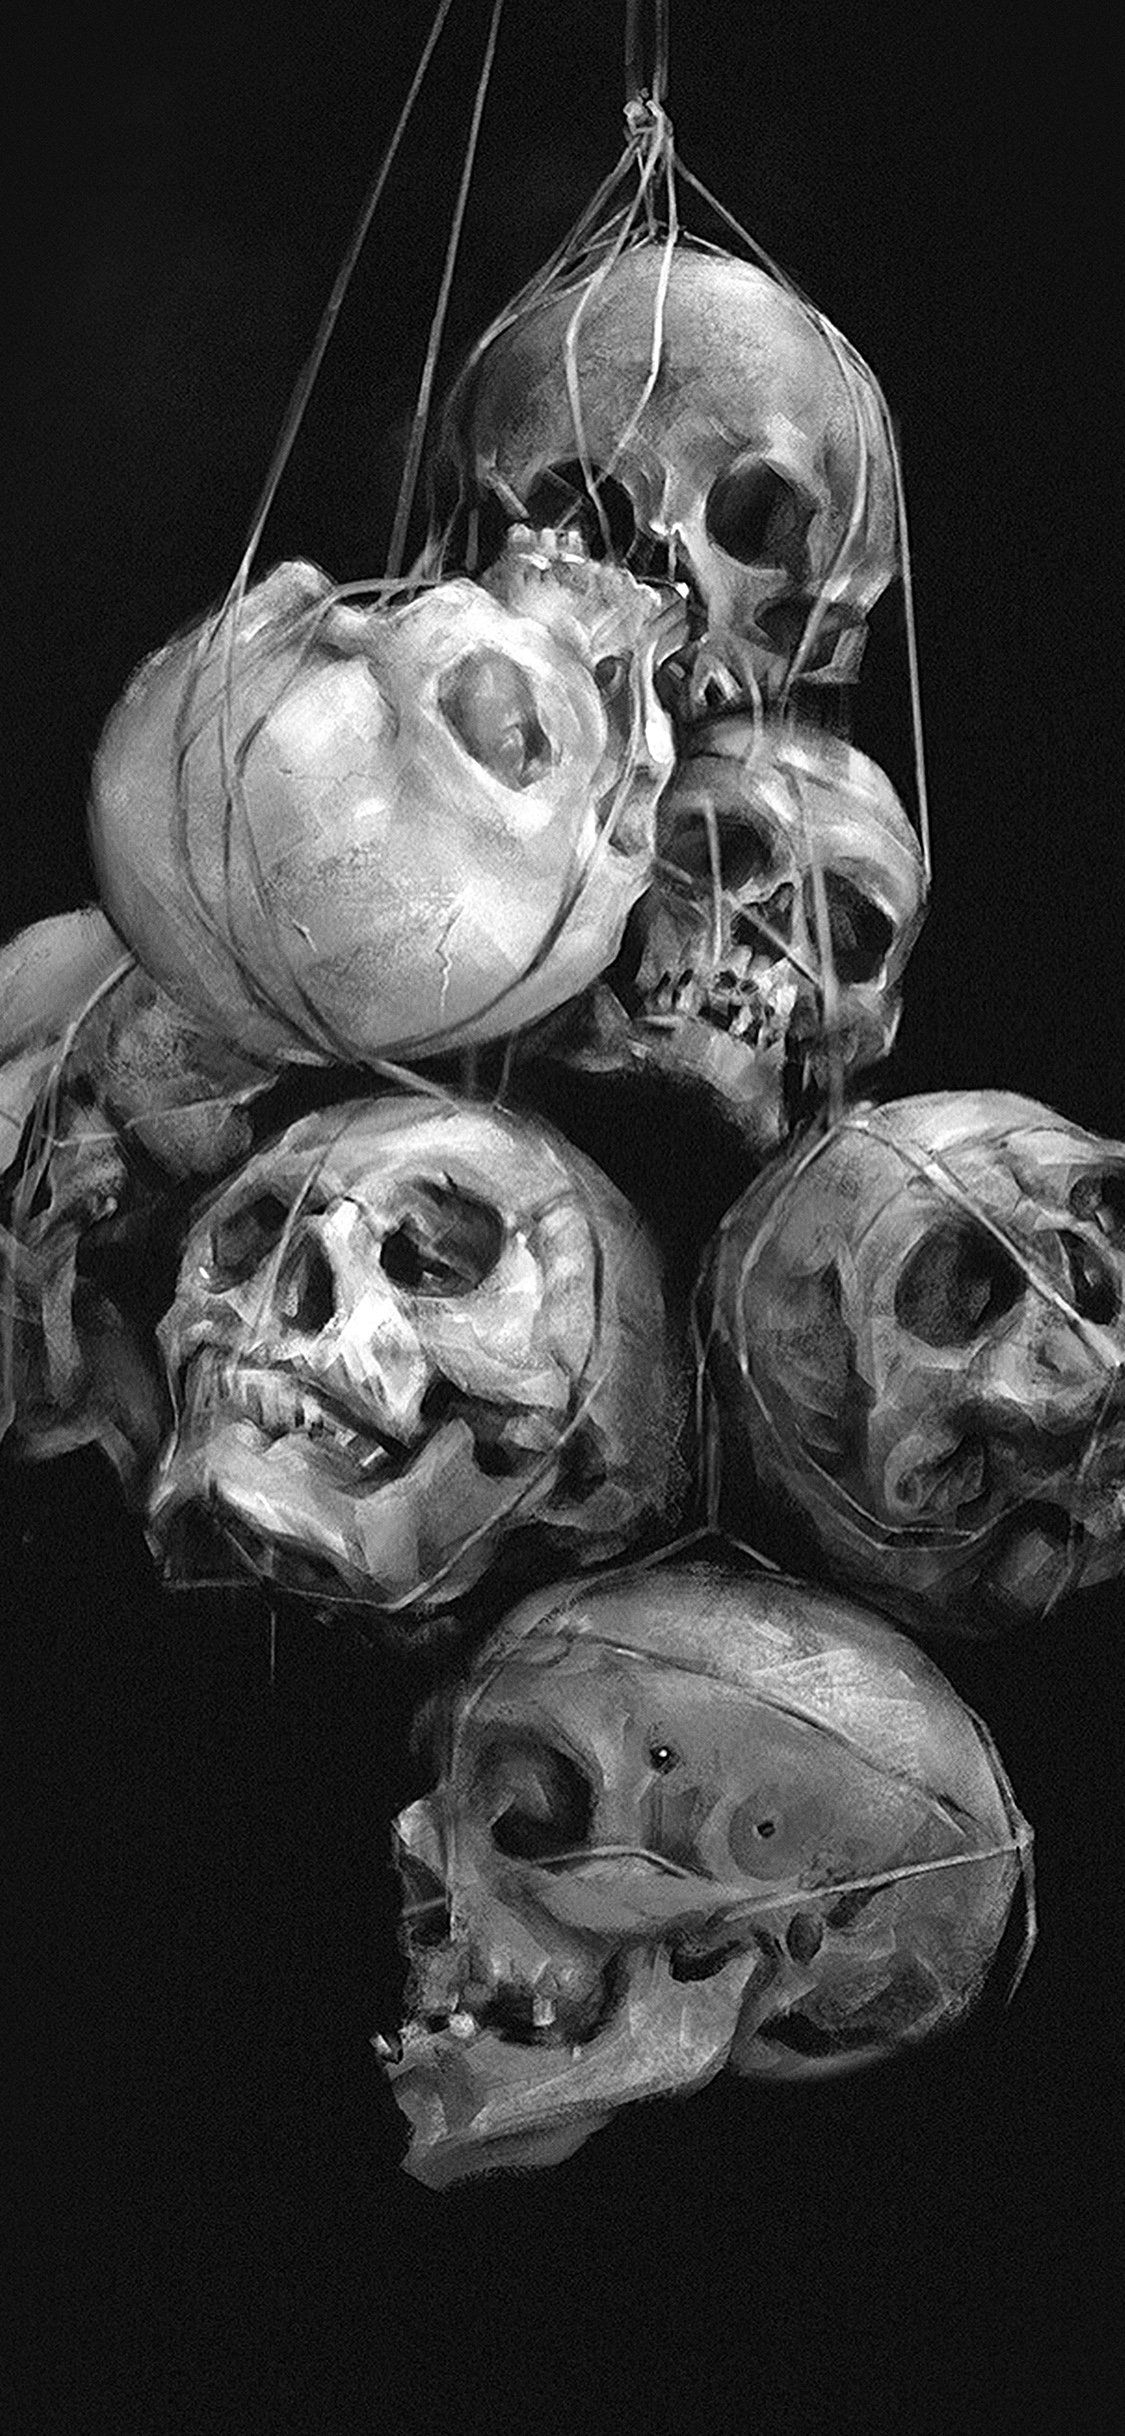 Black And White Aesthetic Halloween 1125x2436 Download Hd Wallpaper Wallpapertip